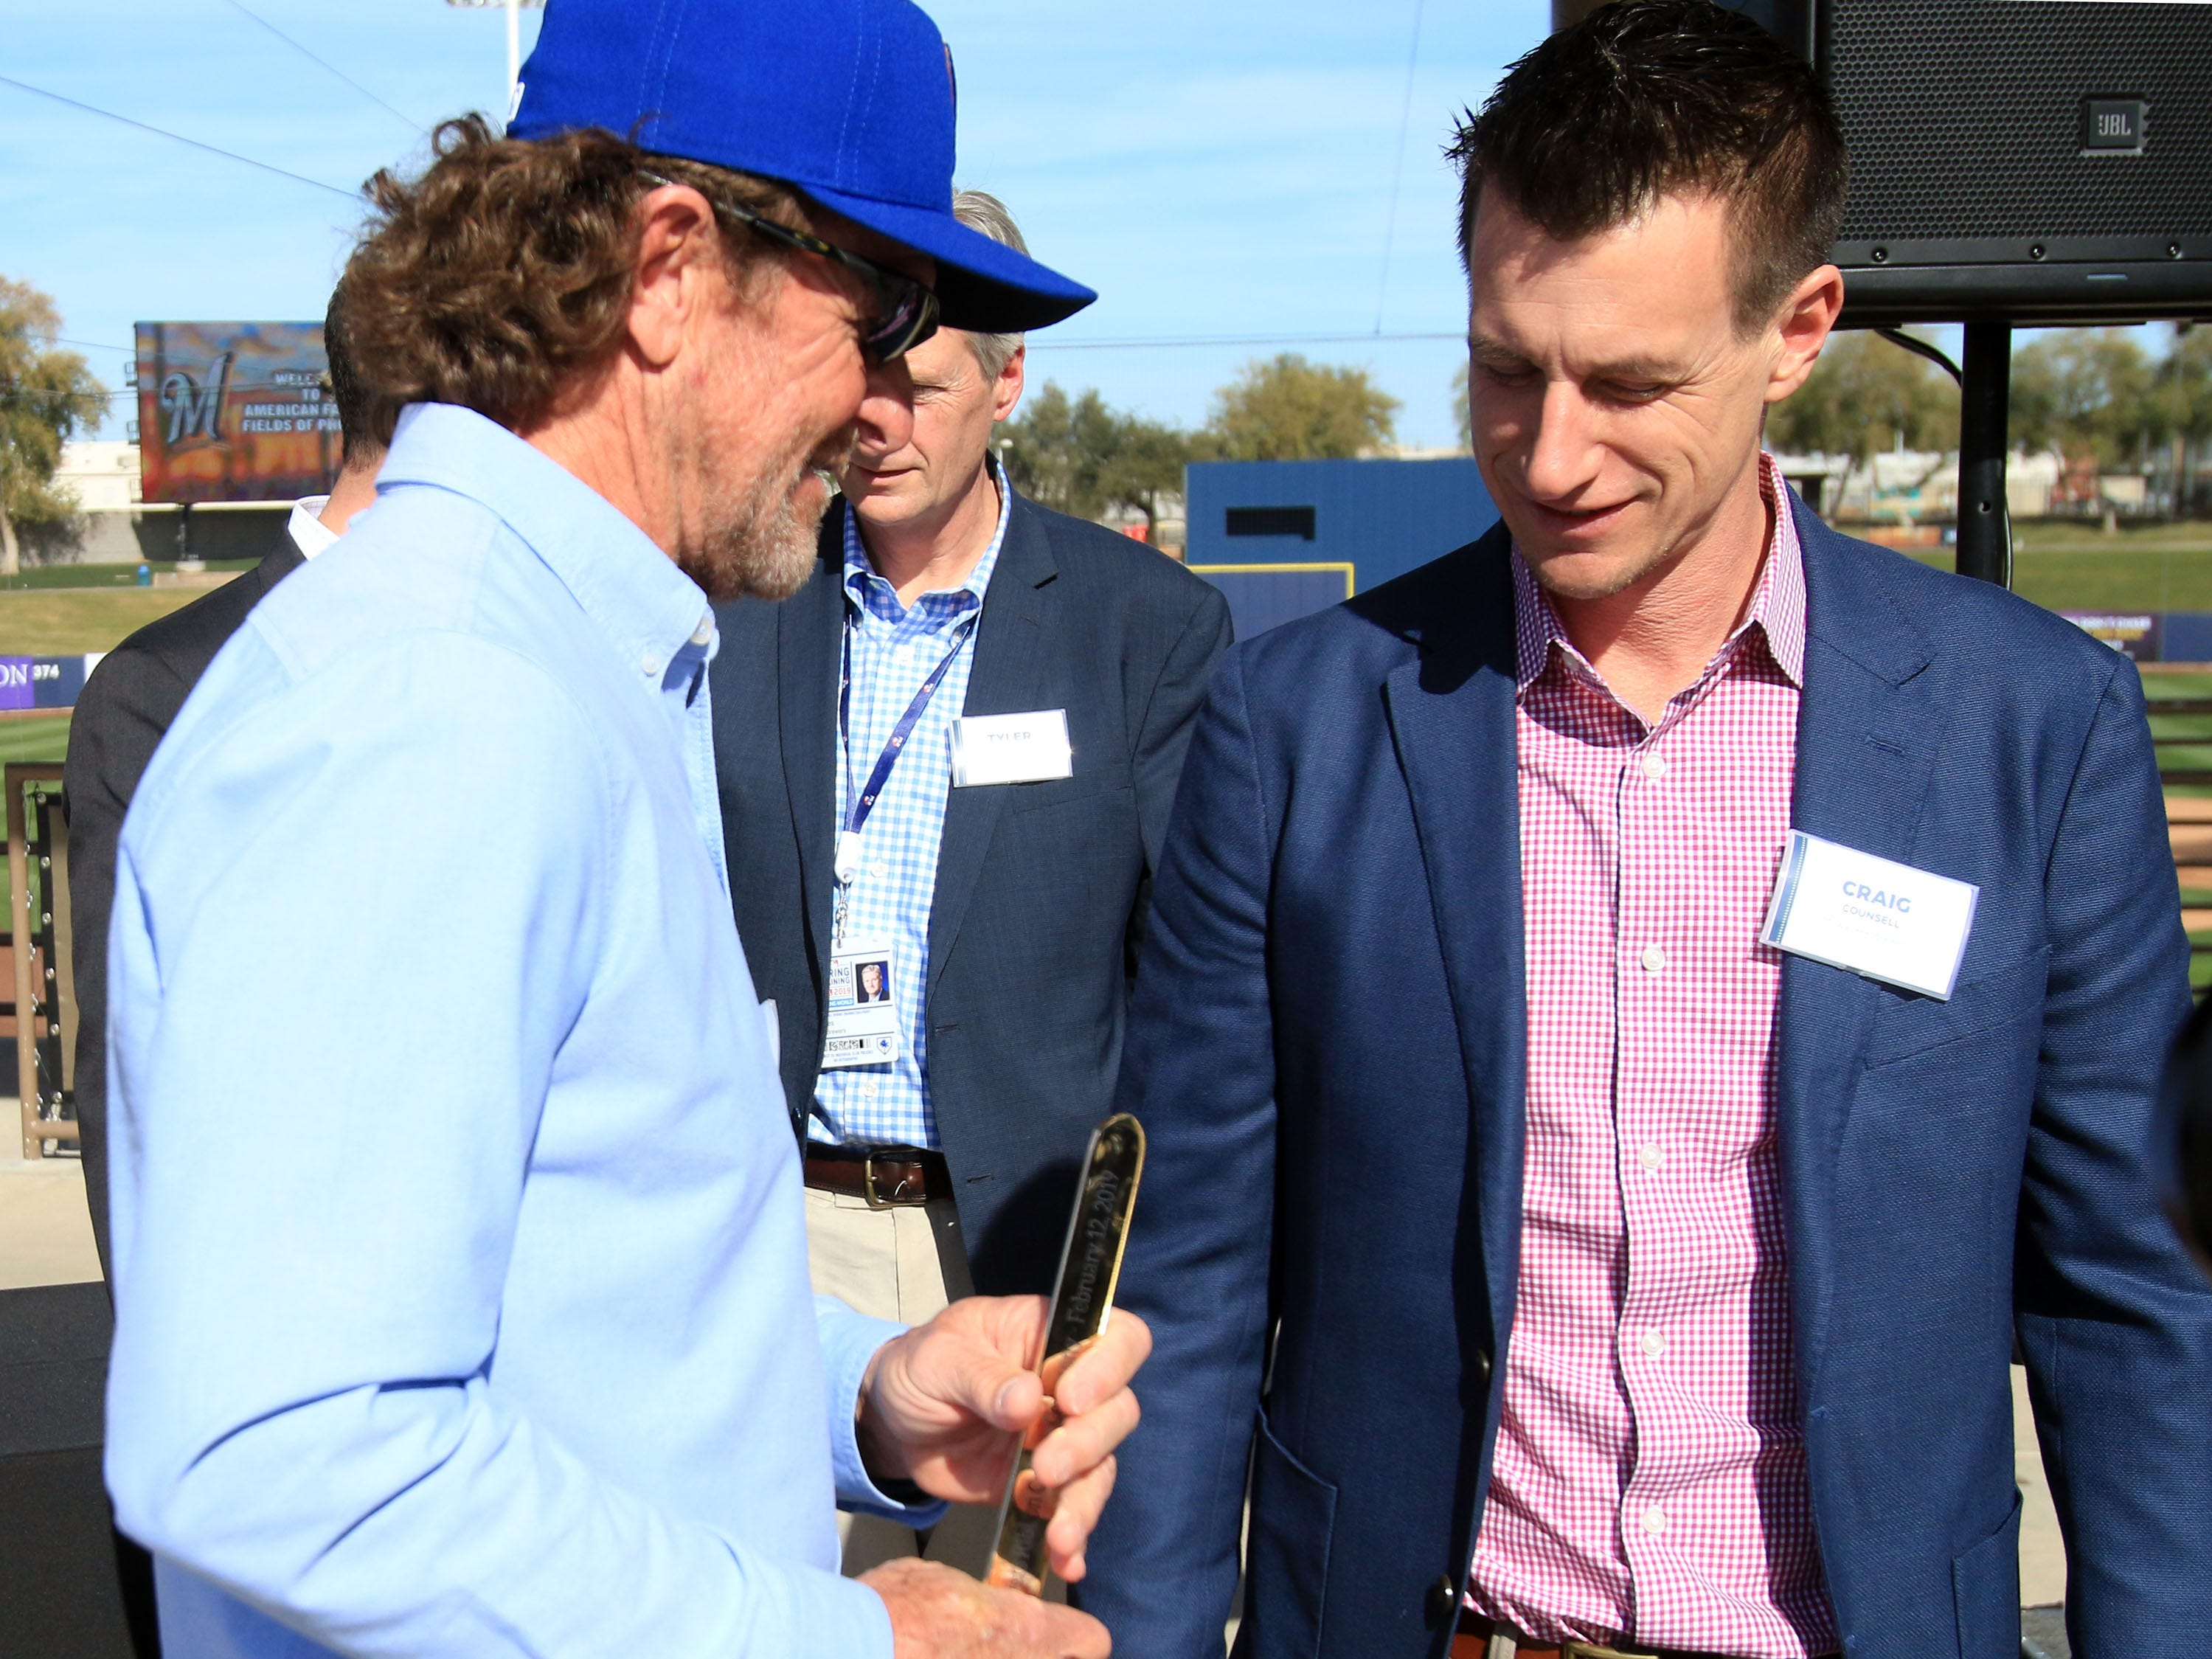 Baseball Hall-of-Famer Robin Yount, left, and Brewers manager Craig Counsell check out the gold scissors, following the ribbon-cutting ceremony.